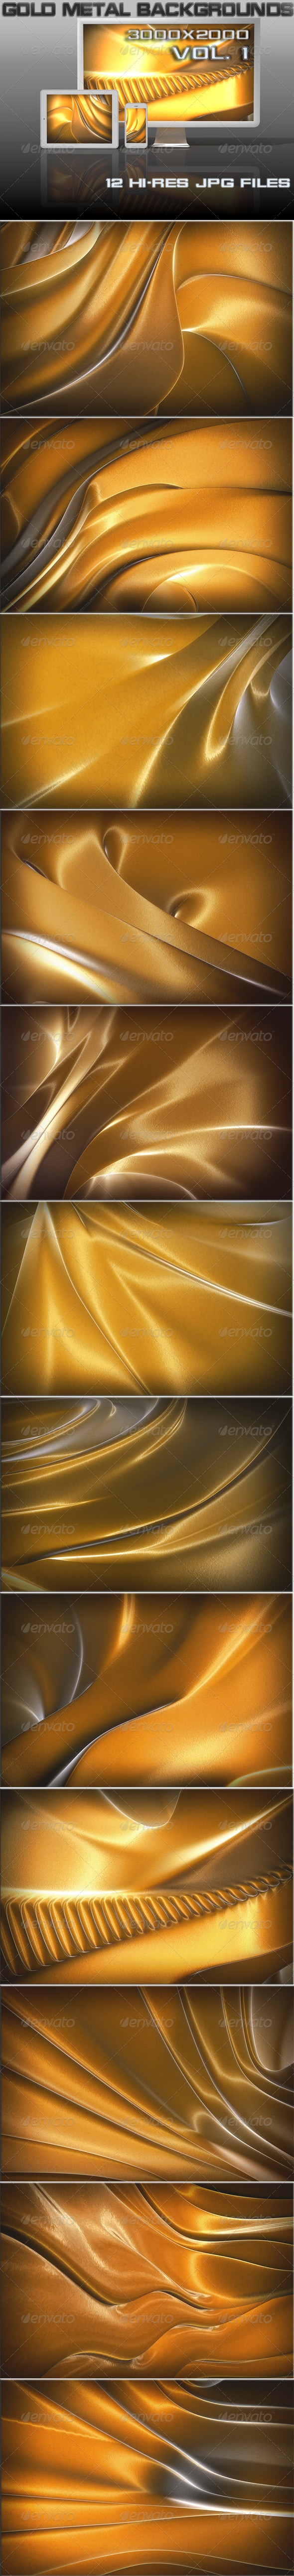 GraphicRiver Gold Metal 3D Backgrounds 7742326